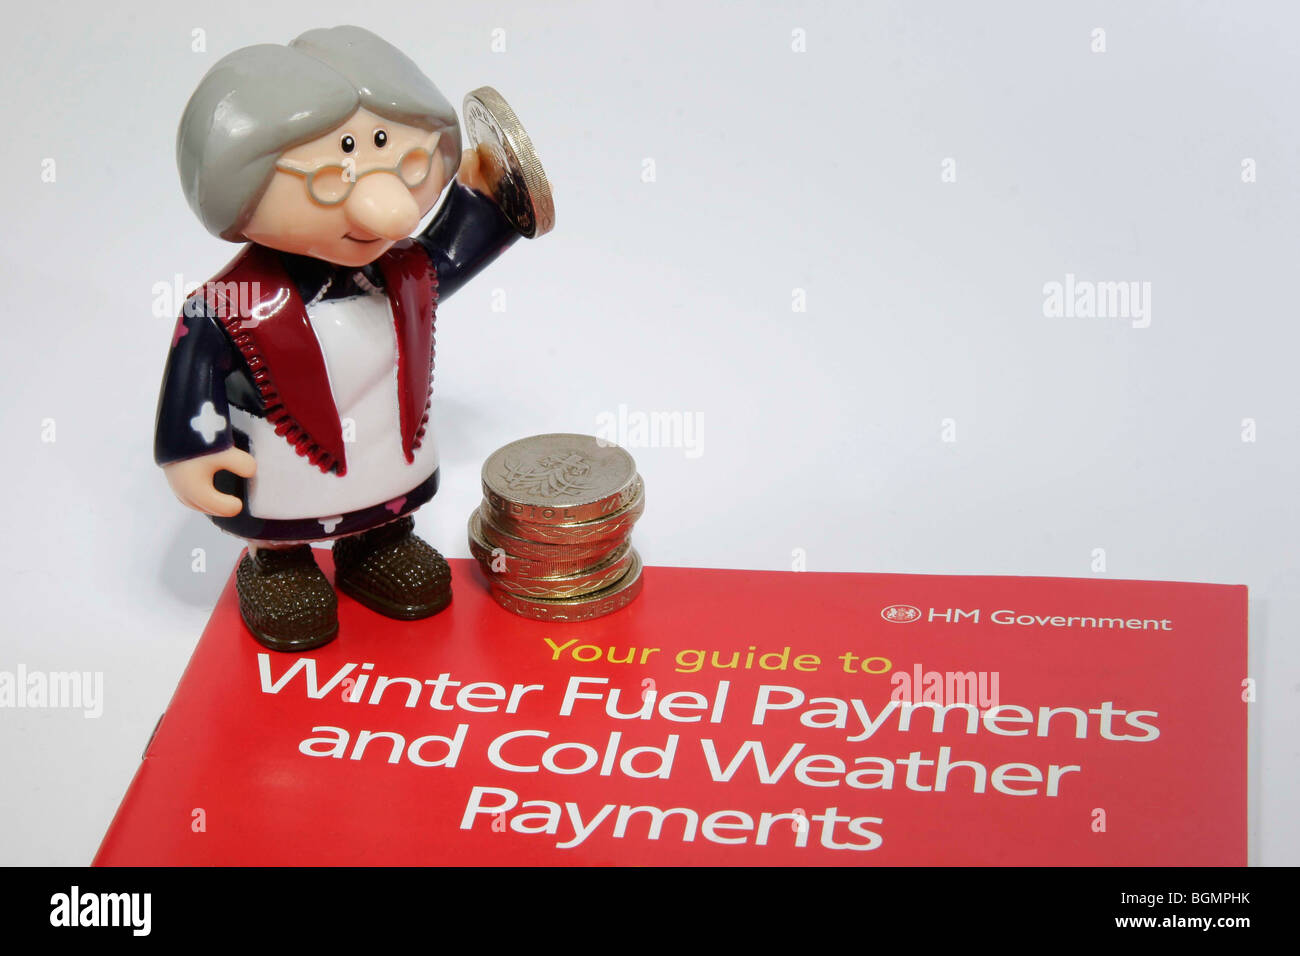 Model of old lady holding money next to a government leaflet for winter fuel and cold weather payments Stock Photo